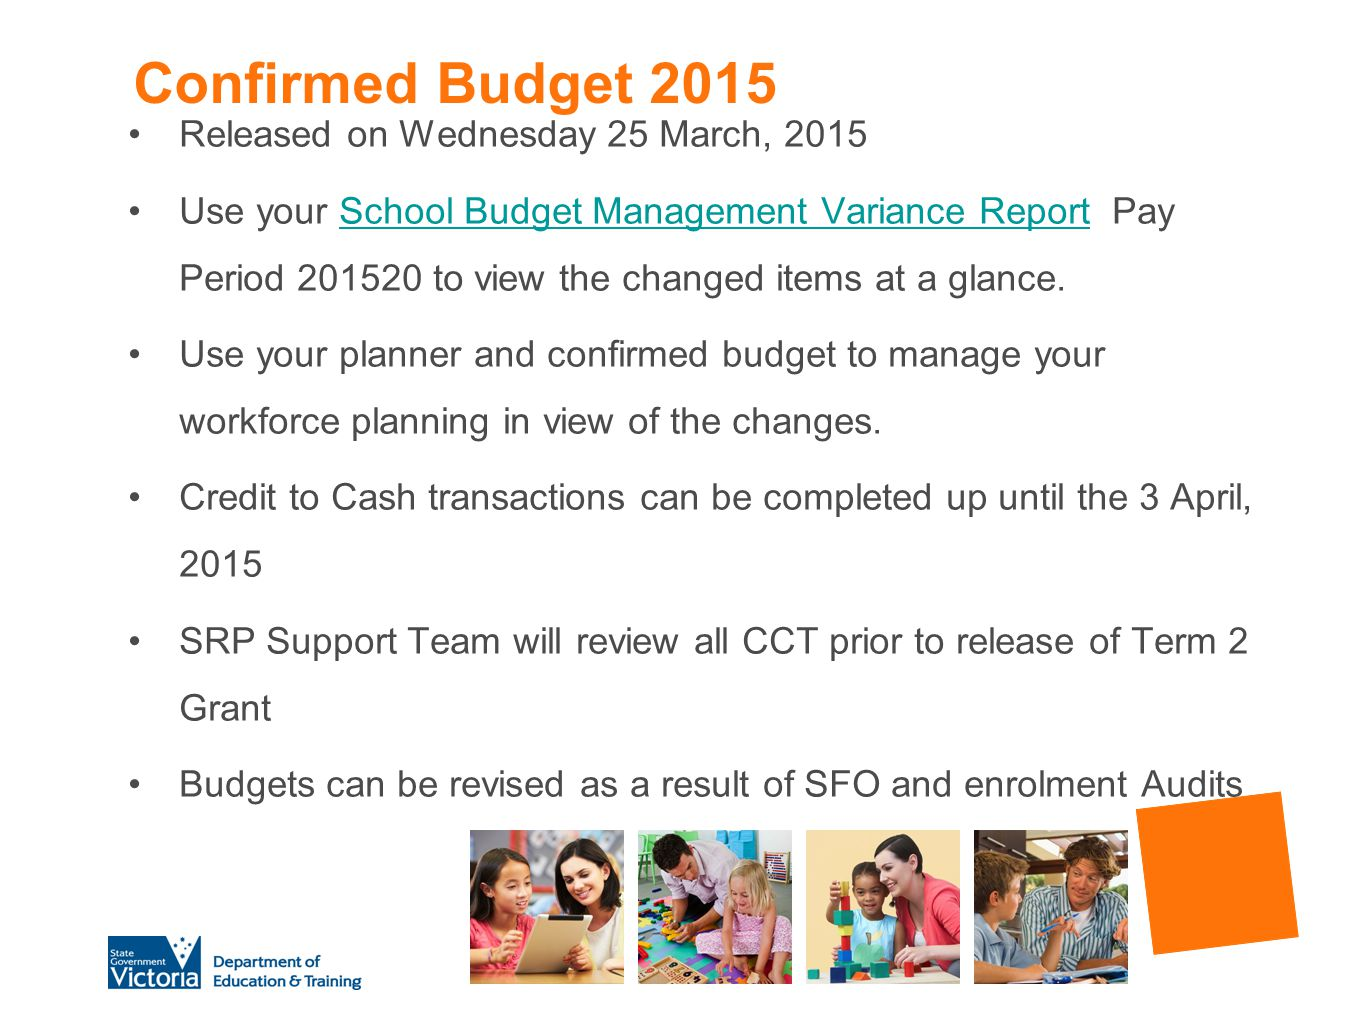 Confirmed Budget 2015 Released on Wednesday 25 March, 2015 Use your School Budget Management Variance Report Pay Period 201520 to view the changed items at a glance.School Budget Management Variance Report Use your planner and confirmed budget to manage your workforce planning in view of the changes.